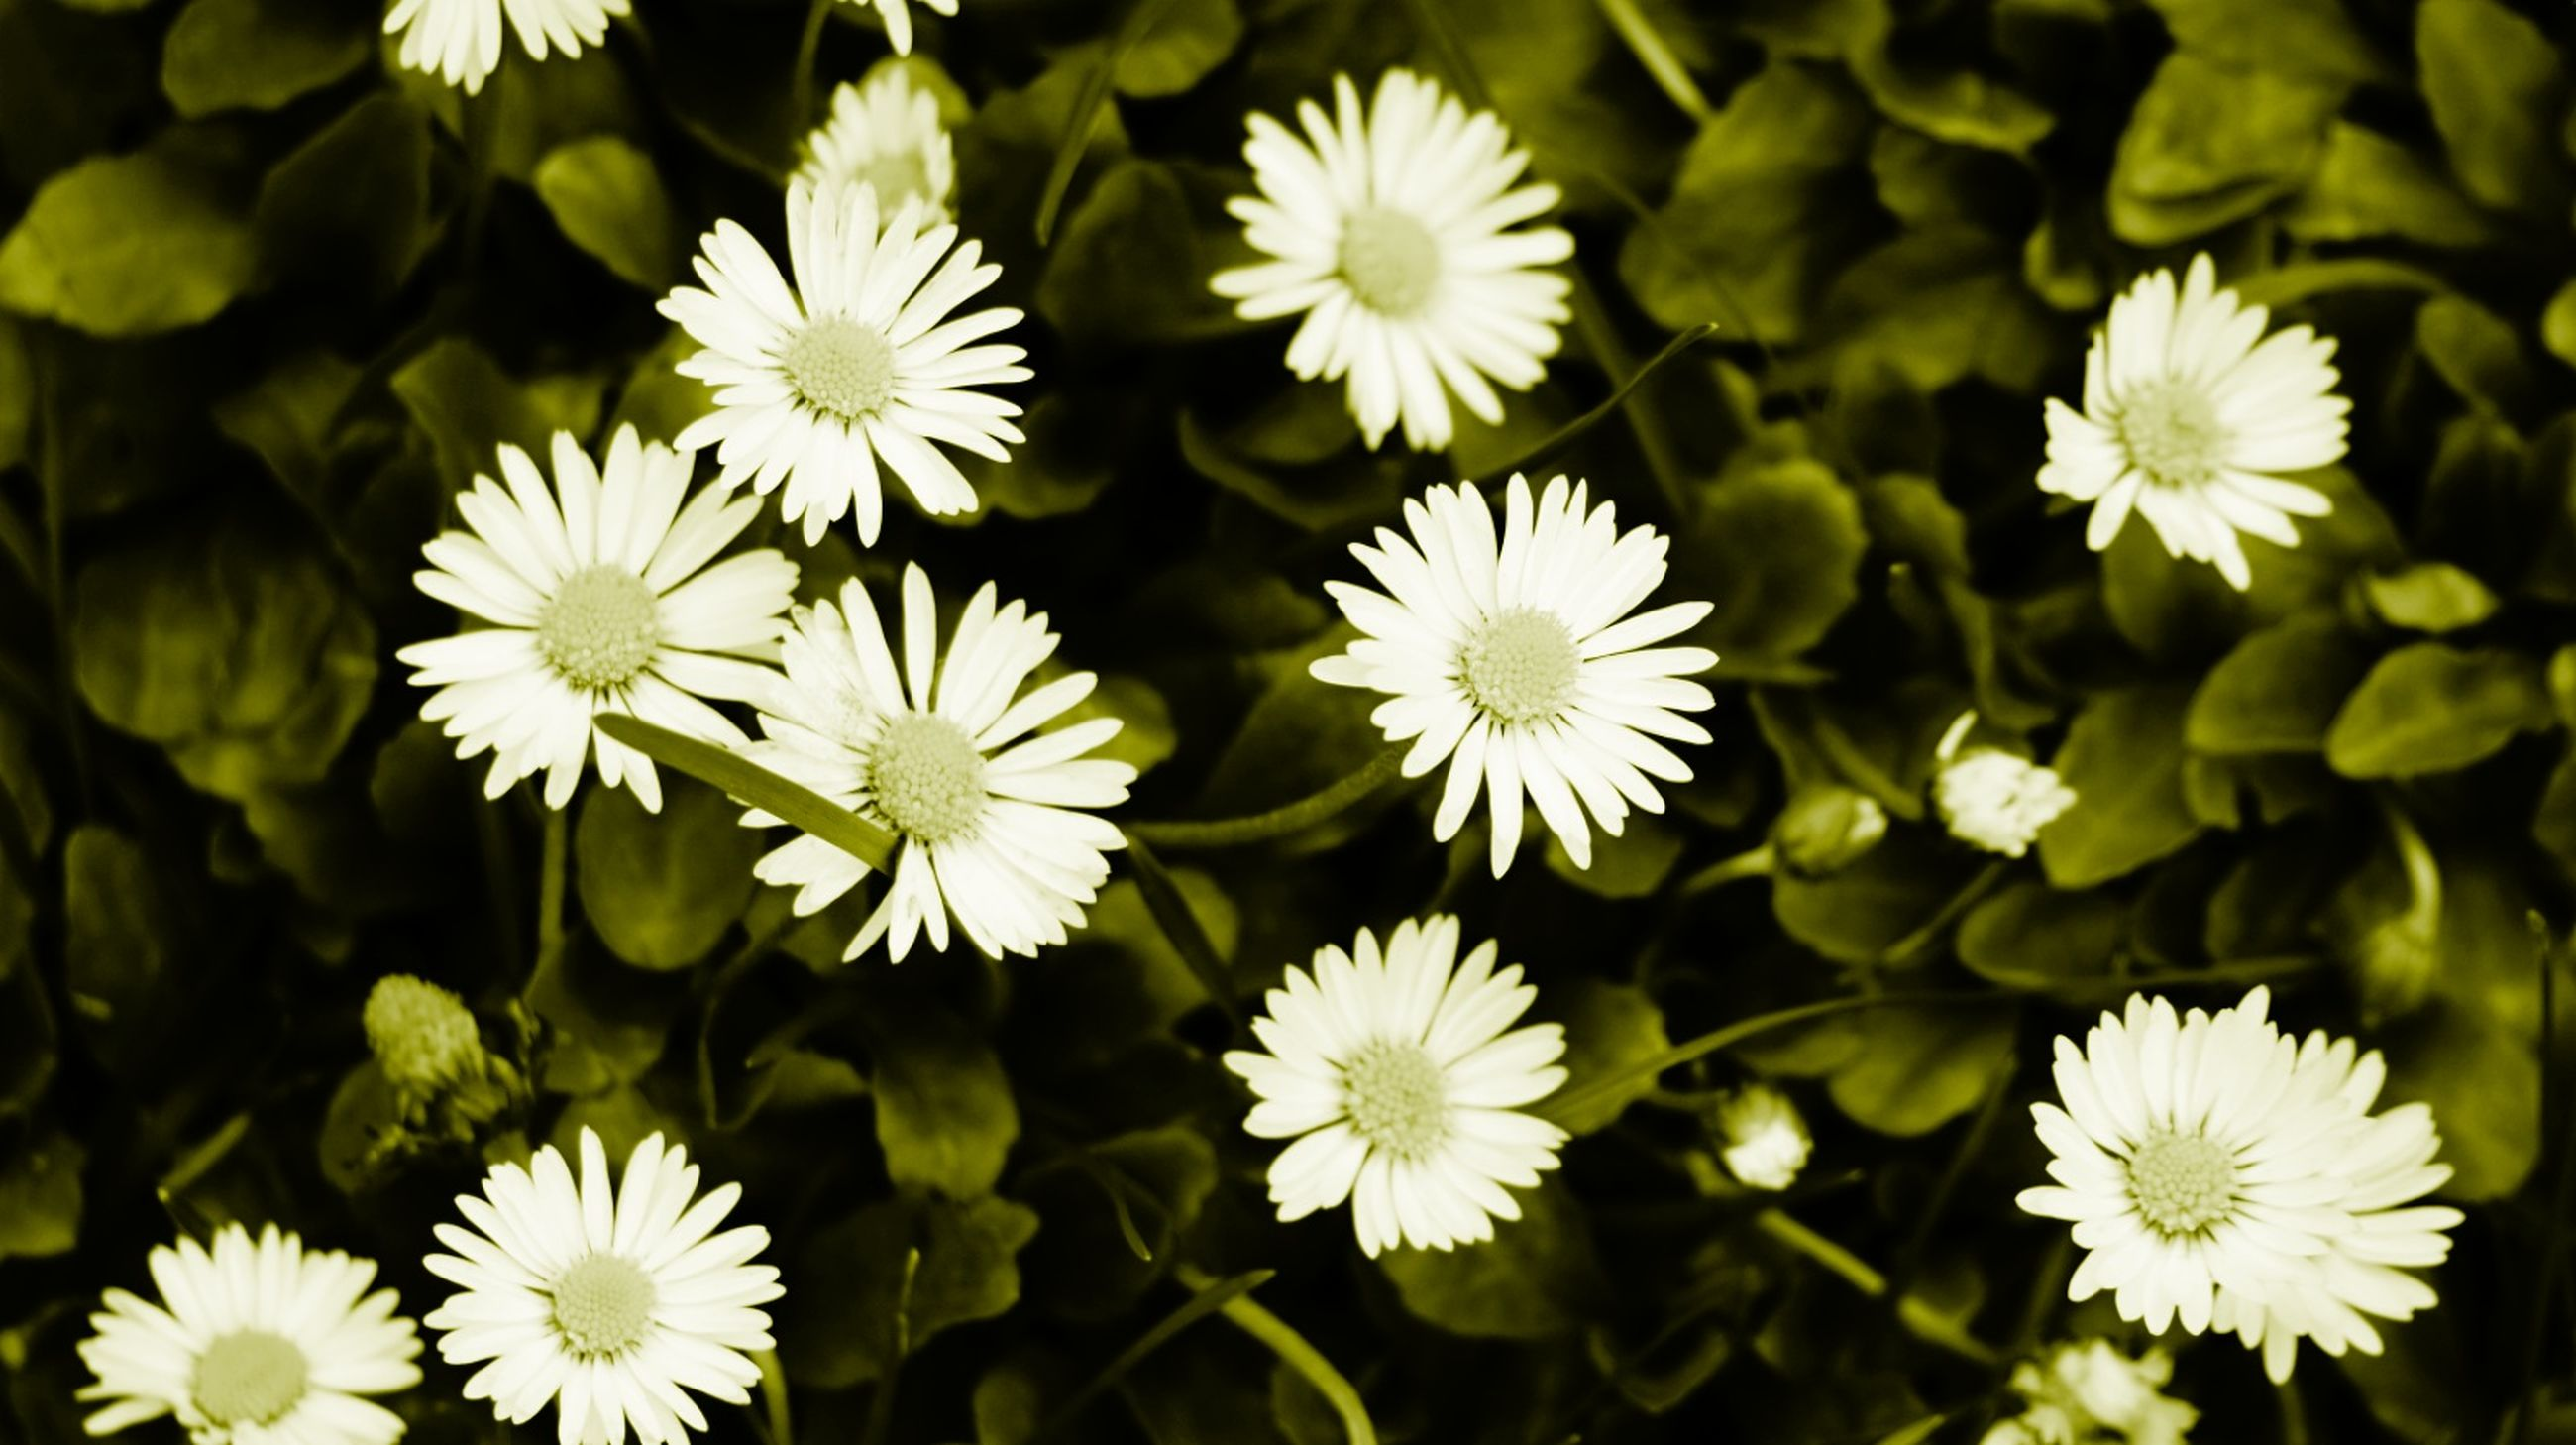 flower, white color, growth, freshness, petal, fragility, plant, beauty in nature, blooming, flower head, nature, daisy, white, high angle view, focus on foreground, close-up, pollen, leaf, park - man made space, green color